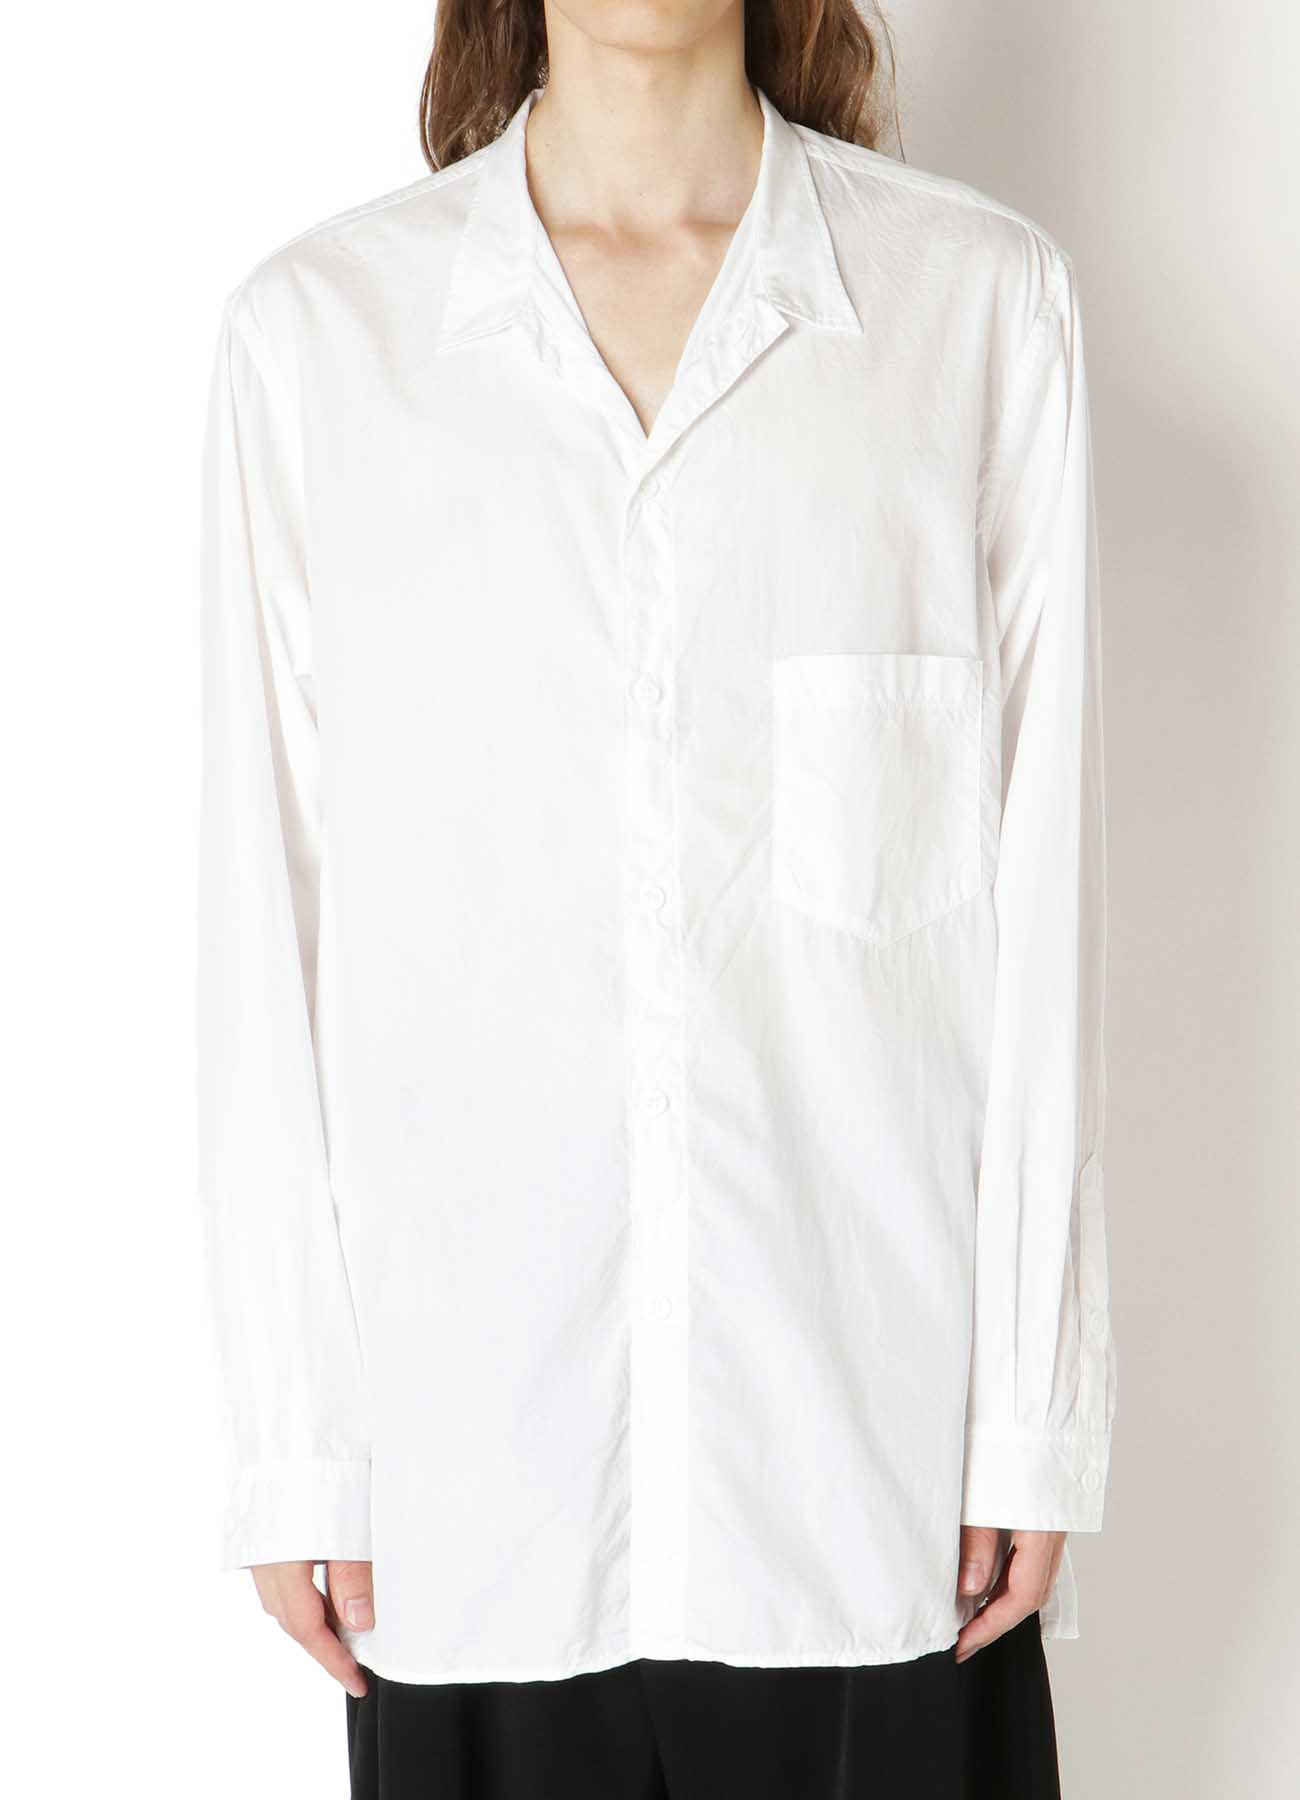 CHAIN STITCH BROAD STAND COLLAR BLOUSE